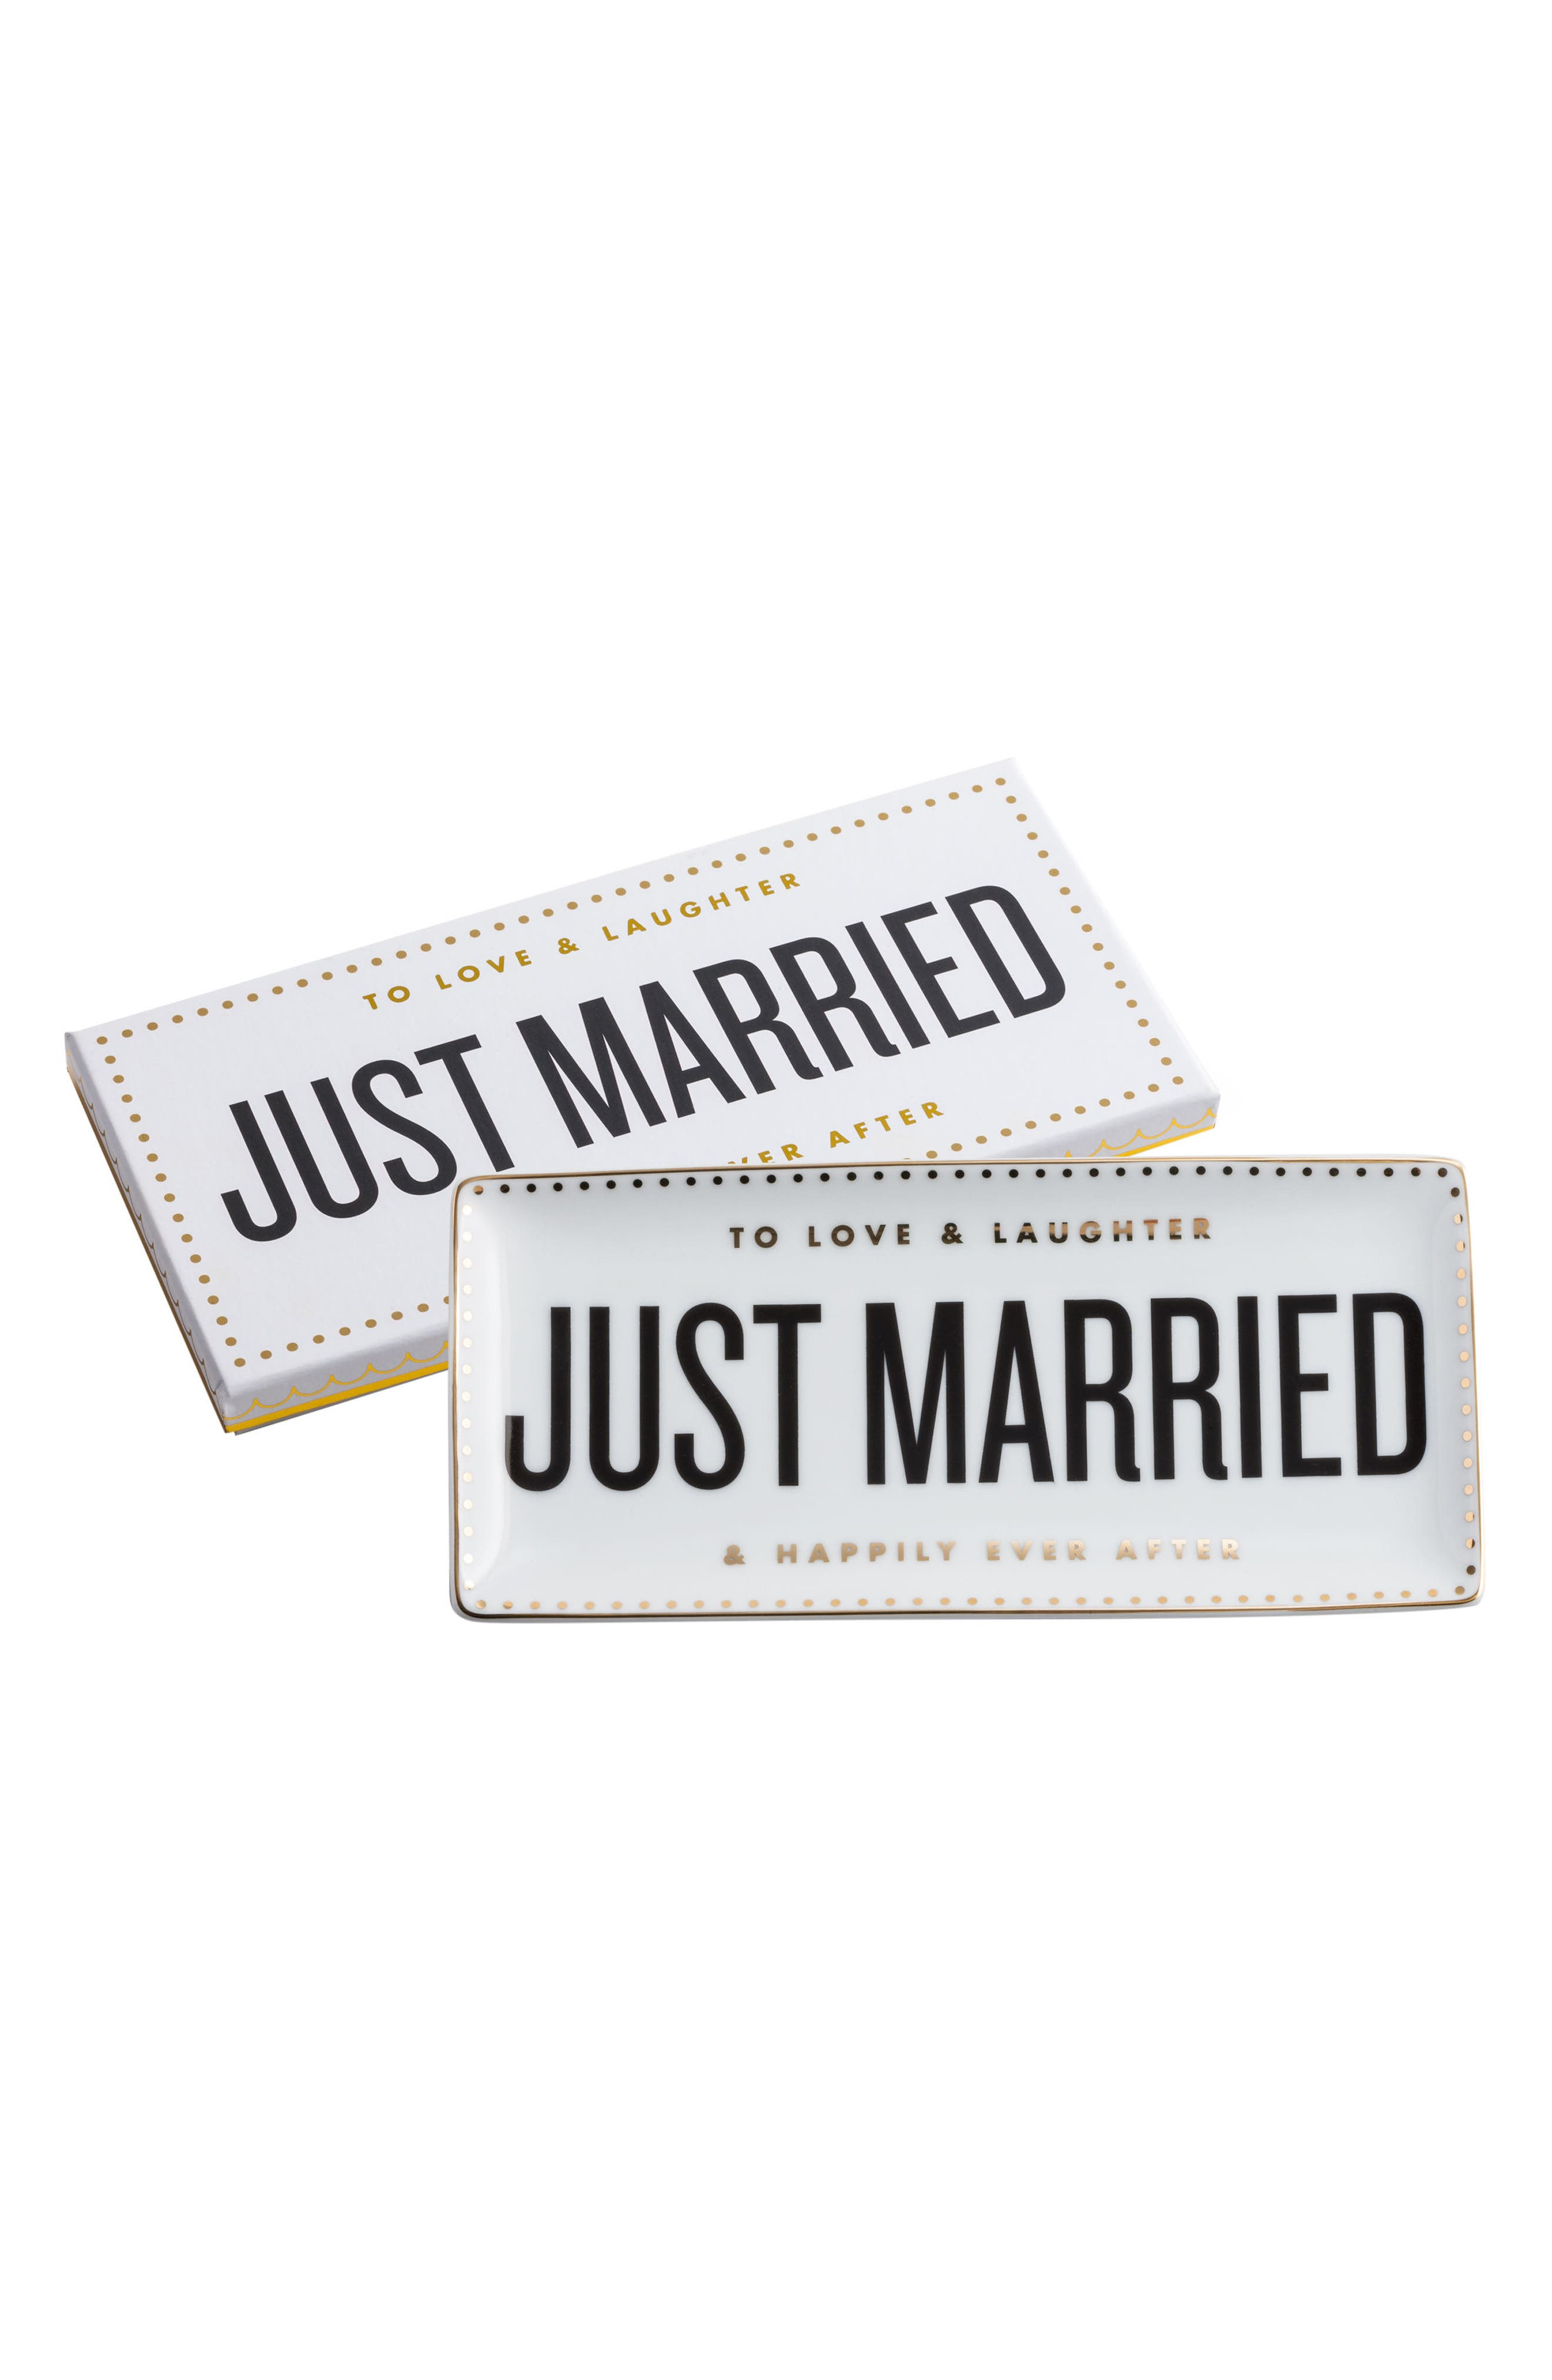 Just Married Porcelain Trinket Tray,                         Main,                         color, White/ Black/ Gold